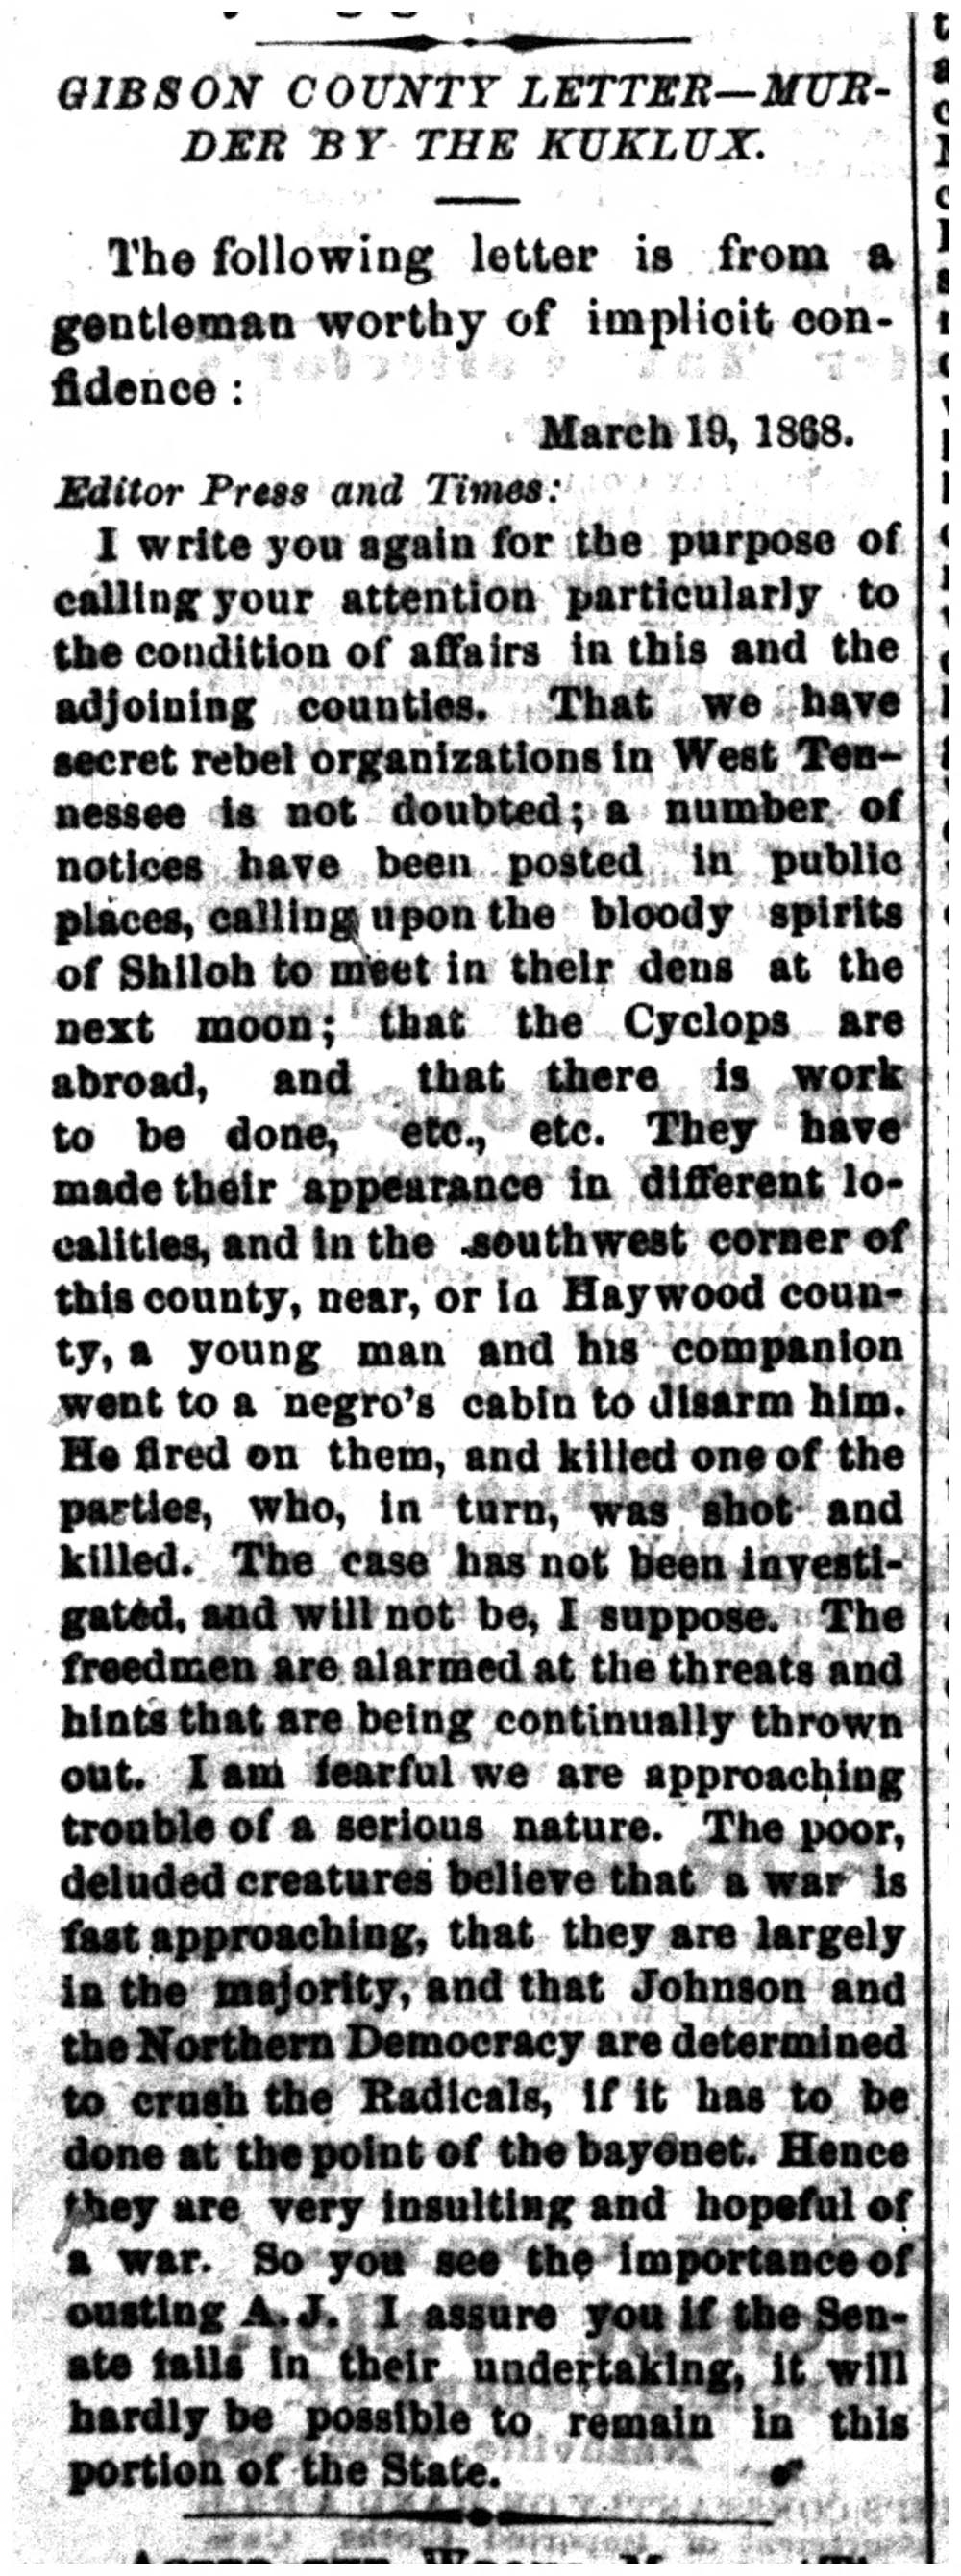 A letter to the editor reporting on a recent murder of an African American man in Gibson County, presumably committed by the Ku Klux Klan